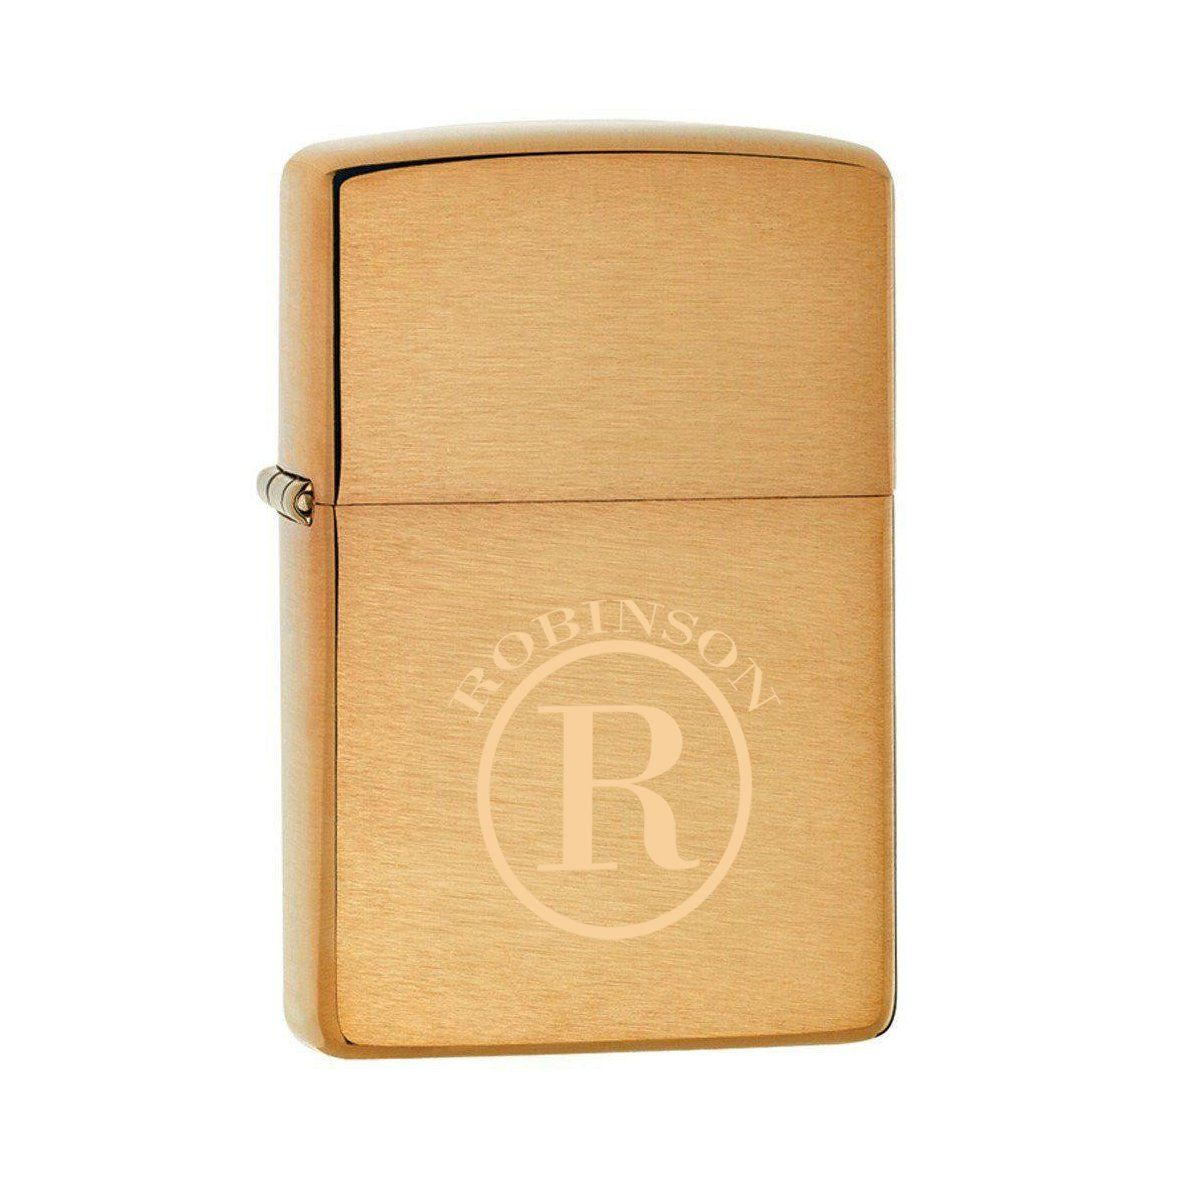 Personalized Lighters - Zippo - Brushed Brass - Executive Gifts